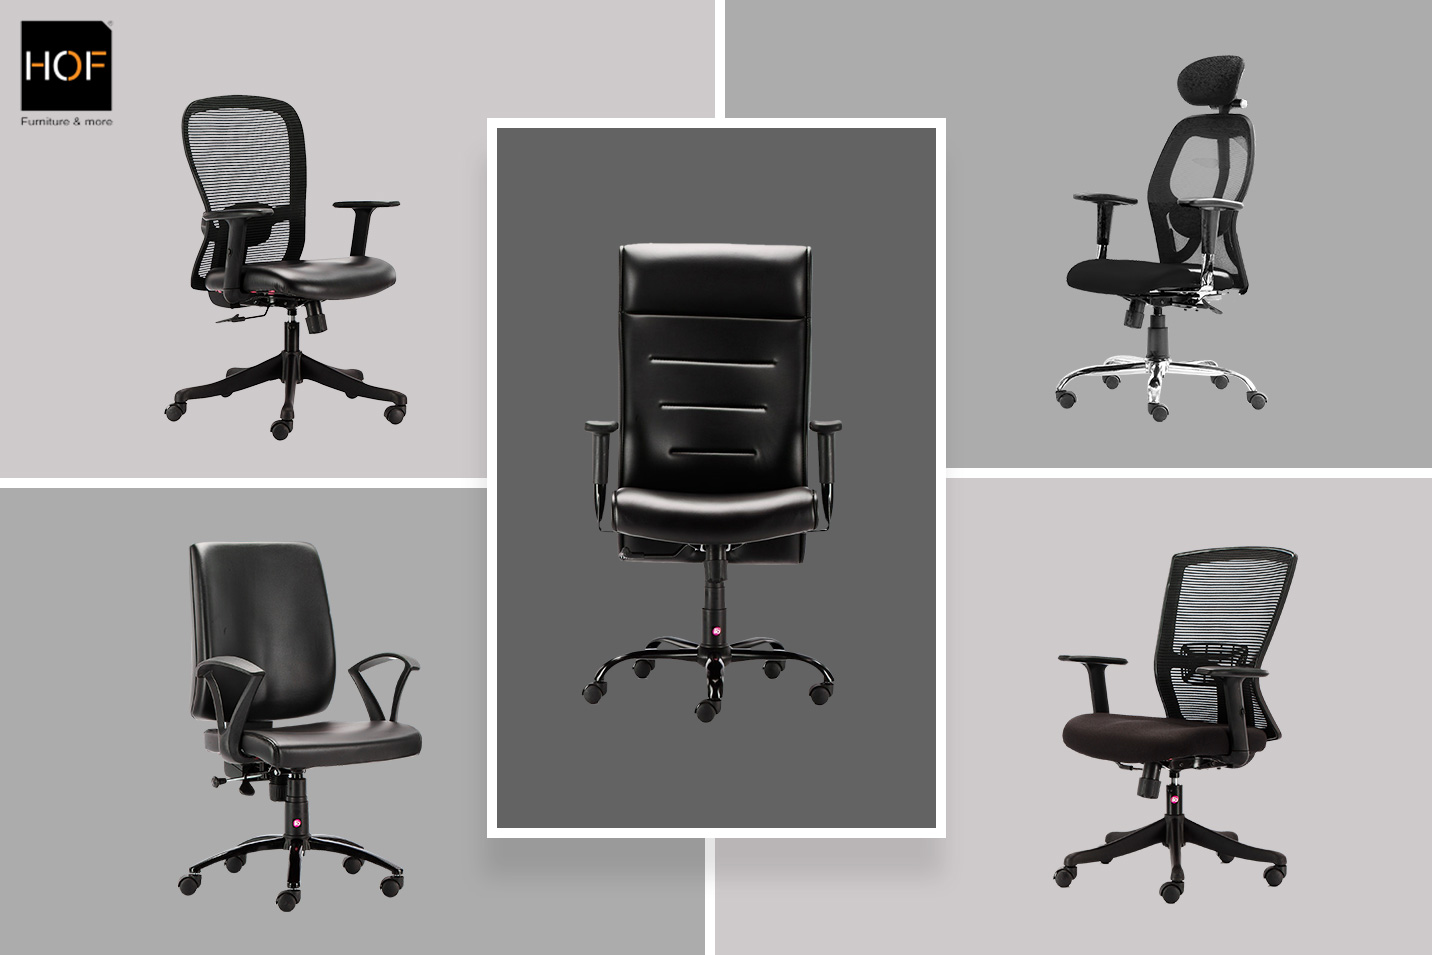 Office chairs under INR 10K